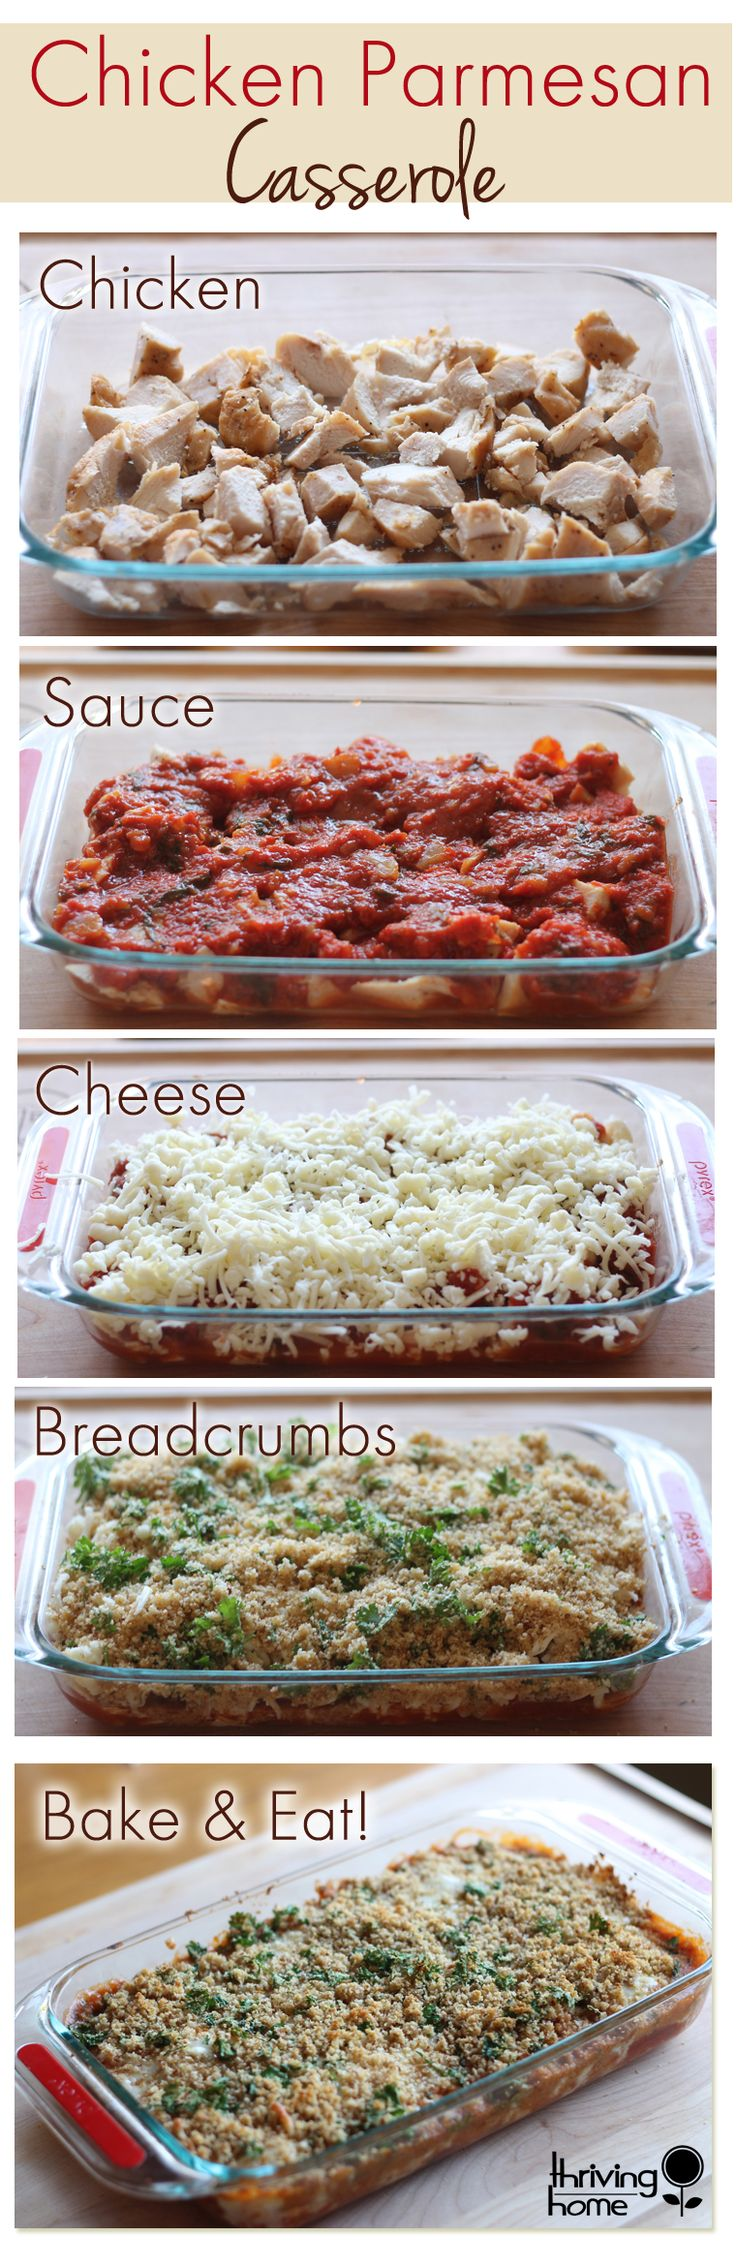 Chicken 65 healthy food kitchen - Chicken Parmesan Casserole